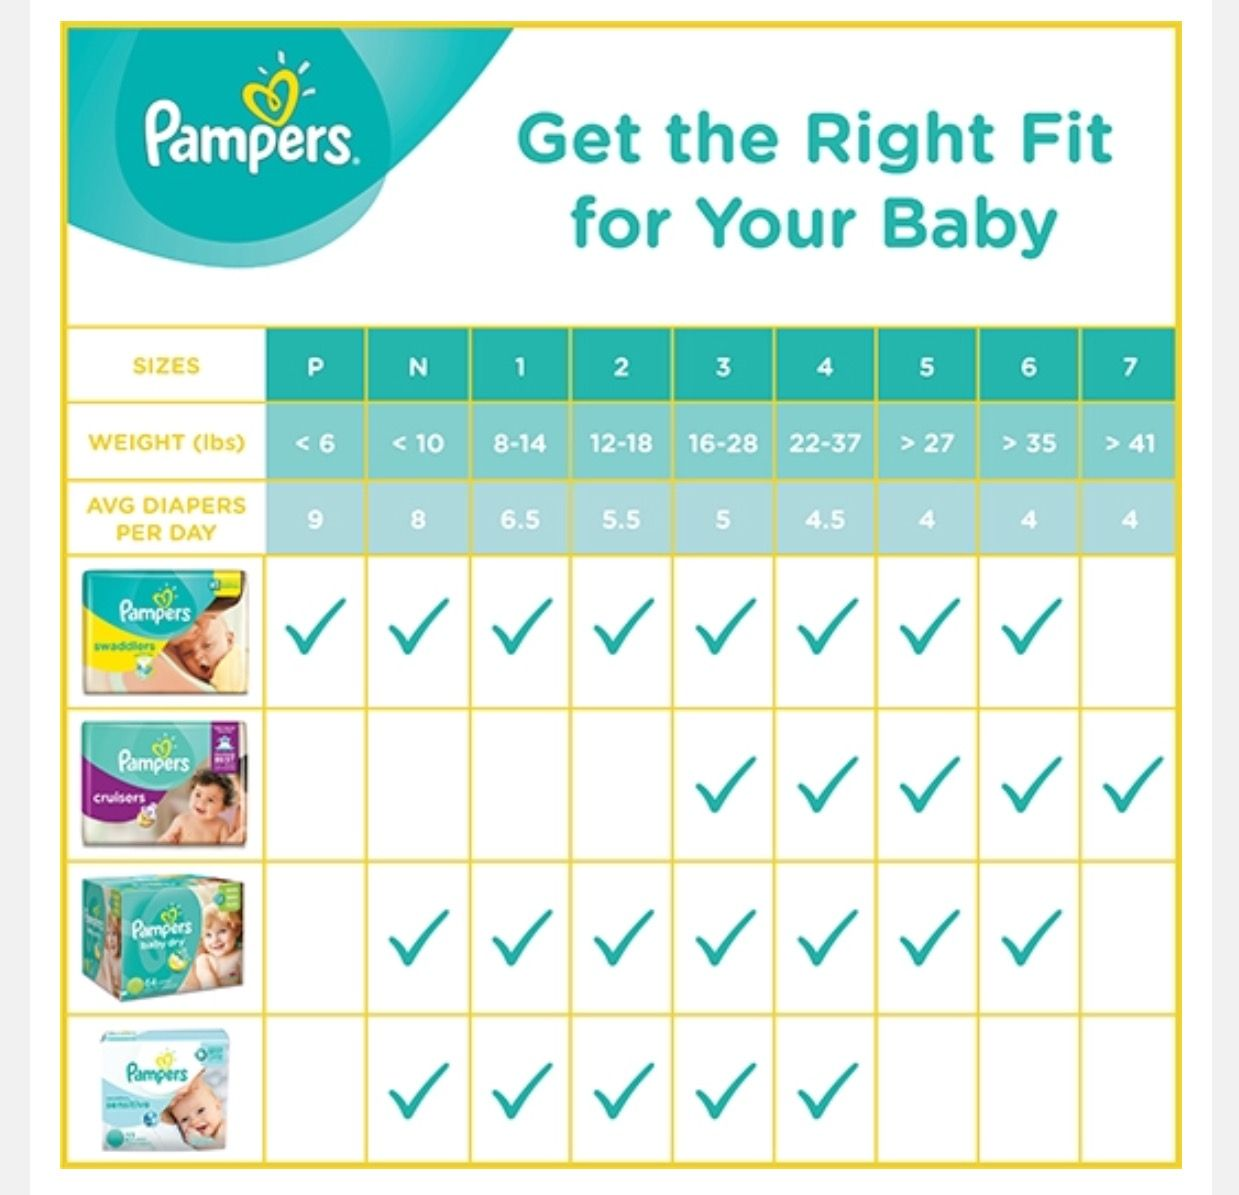 Pin by kelly harrison on when i have kids pinterest babies diaper size and weight chart average number of diapers a day nvjuhfo Image collections